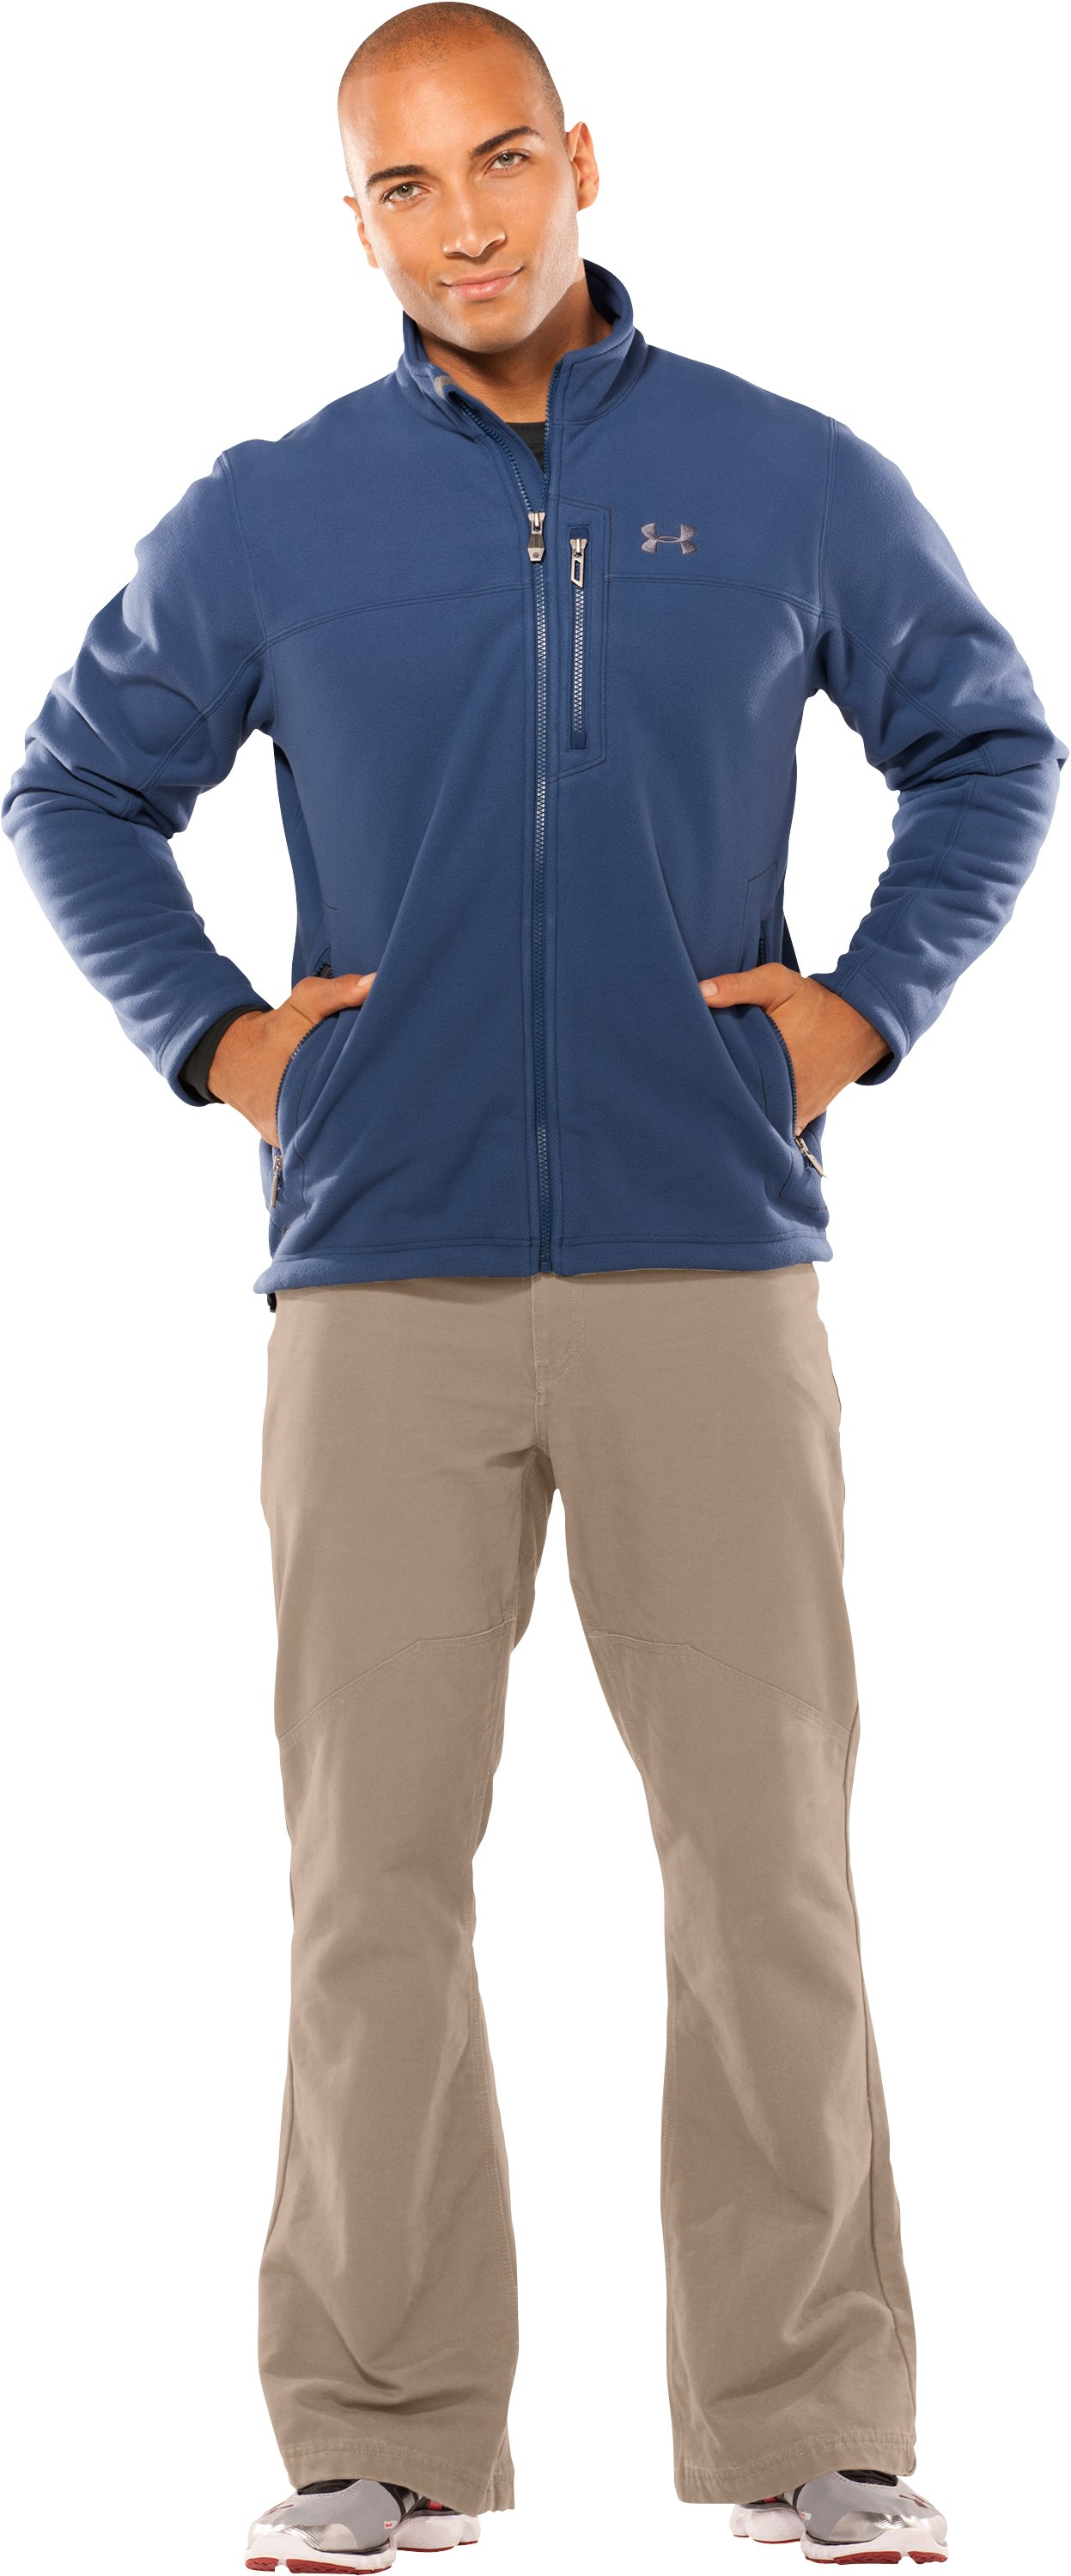 Men's Derecho II Windproof Fleece Jacket, Admiral, zoomed image